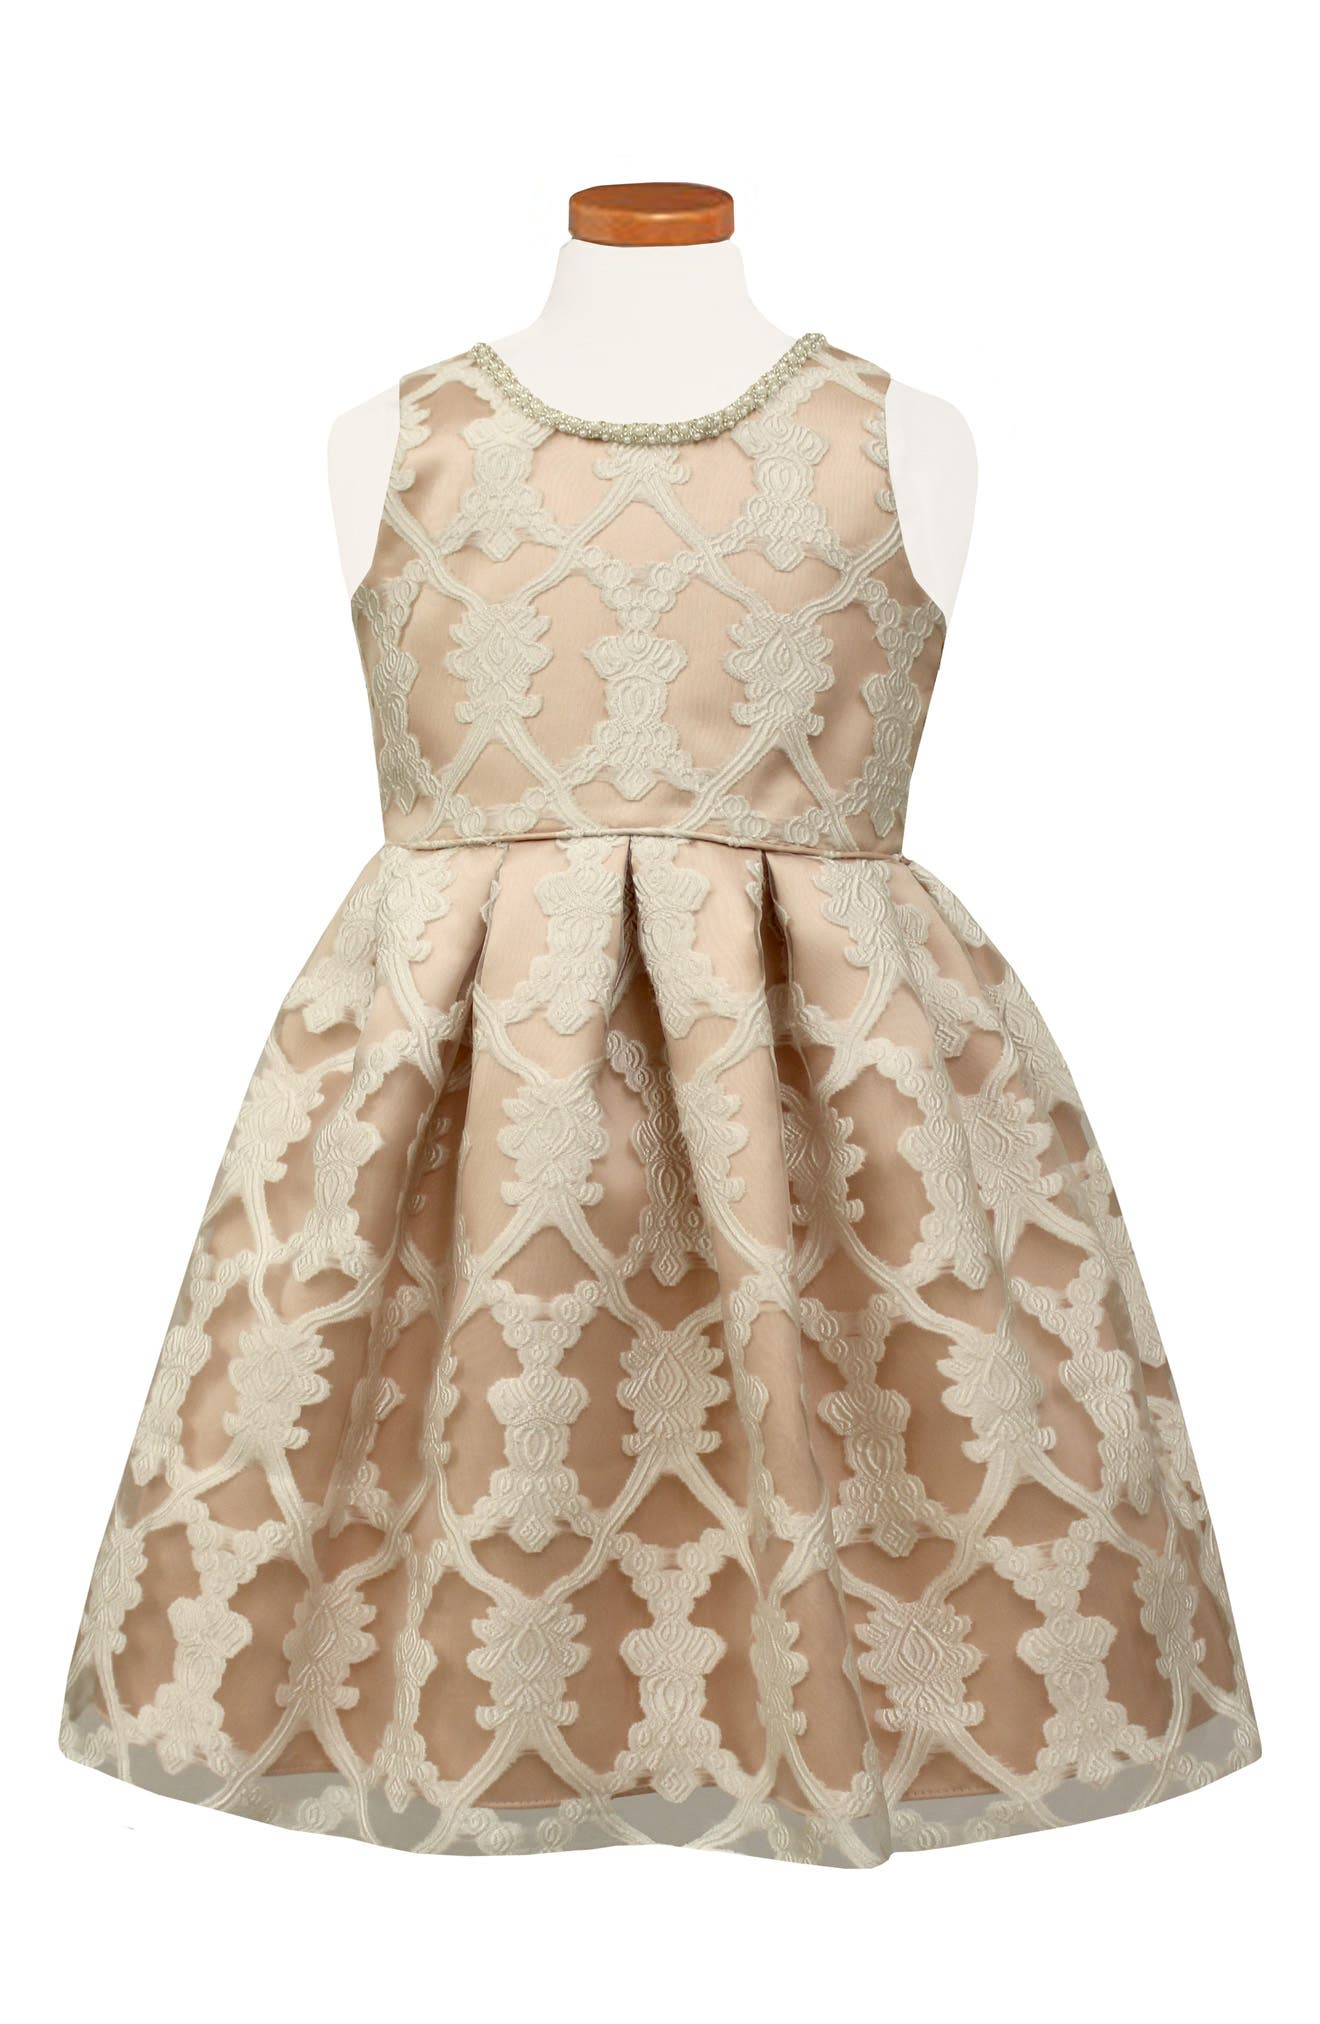 Sorbet Burnout Lace Party Dress (Toddler Girls, Little Girls & Big Girls)